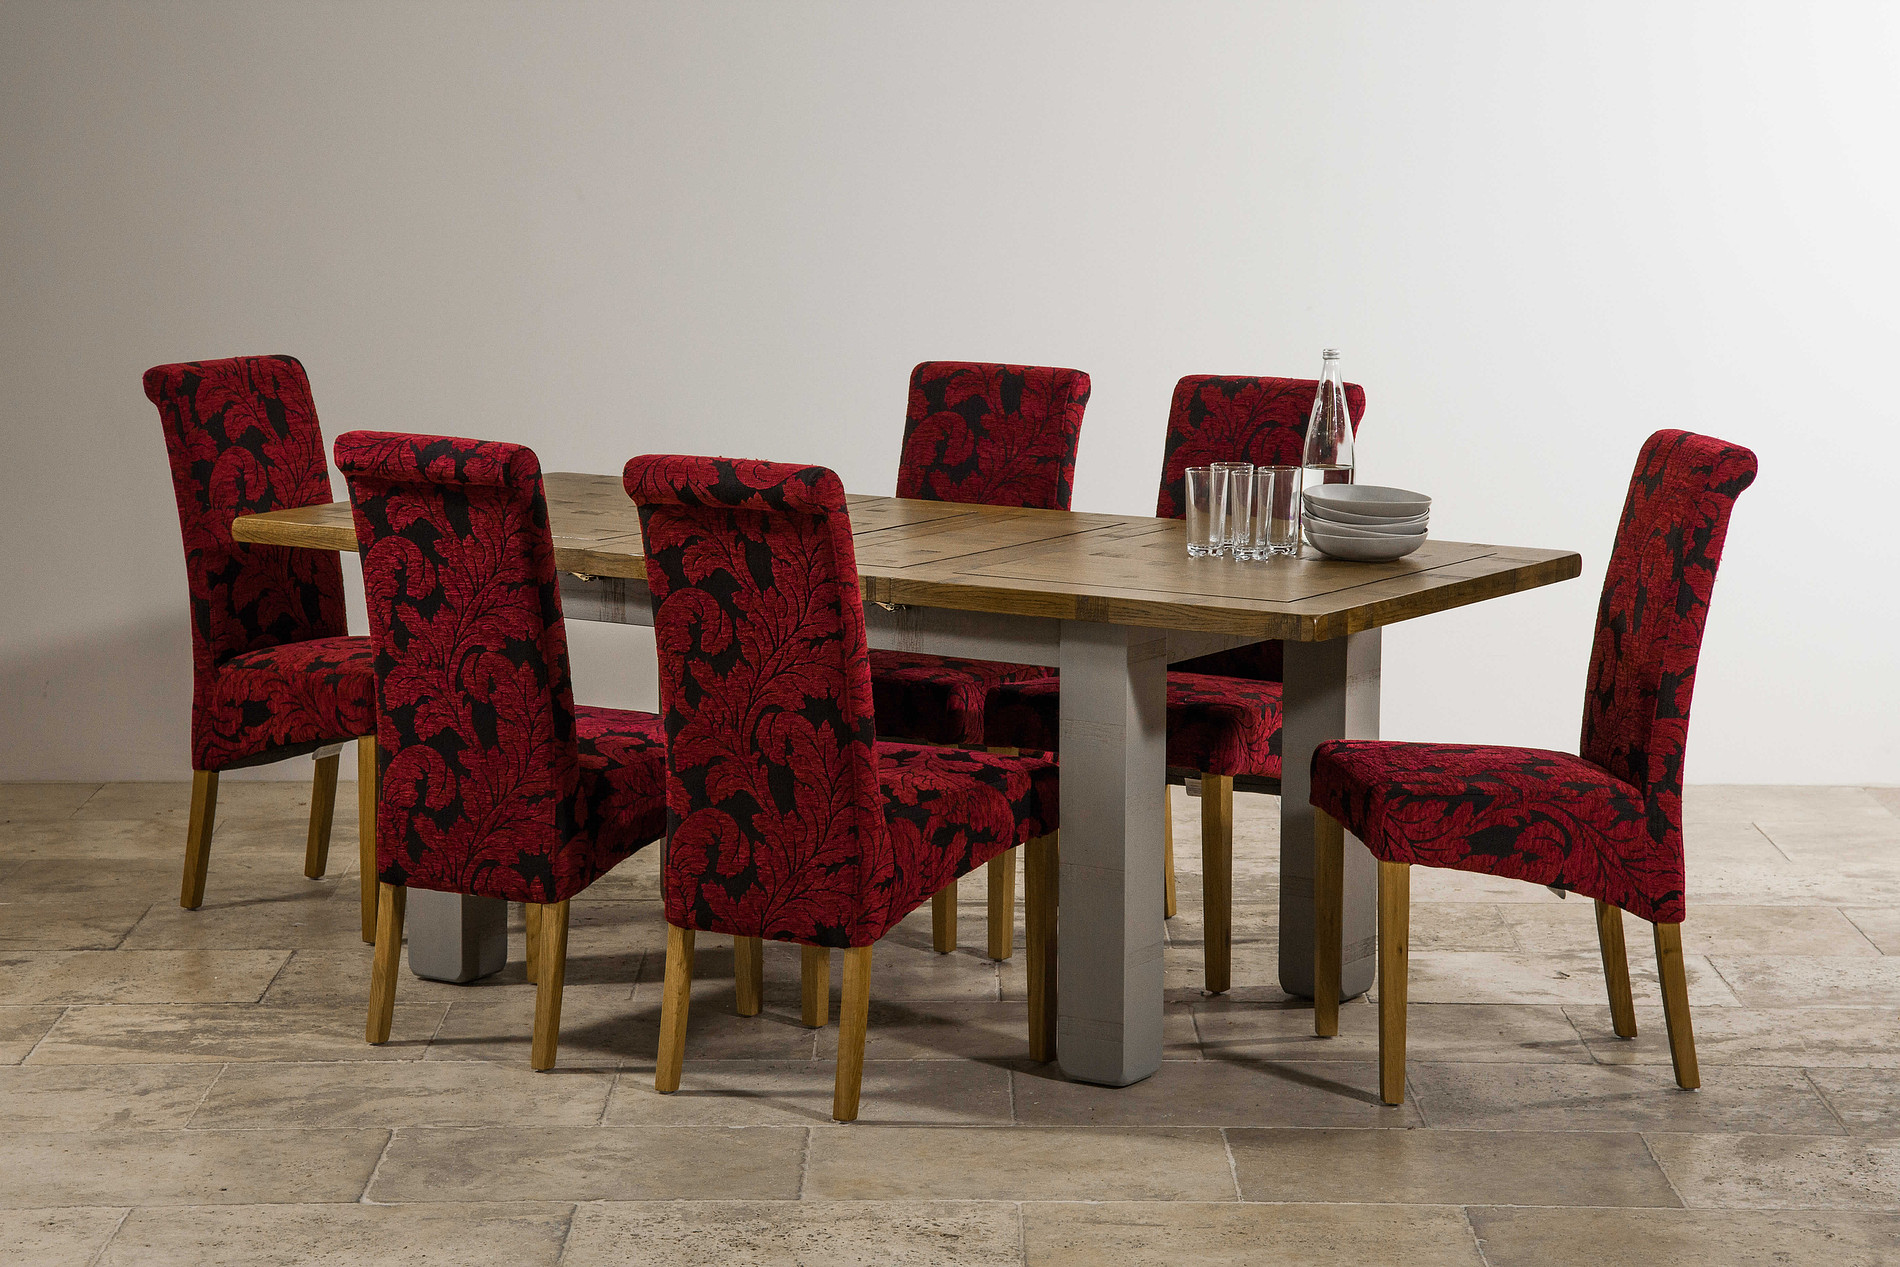 Clermont Painted Rough Sawn Solid Oak 5ft 10quot x 3ft Large  : clermont painted rough sawn solid oak 5ft 10 x 3ft large extending dining table 6 scroll back patterned aubergine fabric chair with solid oak legs 546b6d5ec299e from www.oakfurnitureland.co.uk size 1900 x 1267 jpeg 674kB